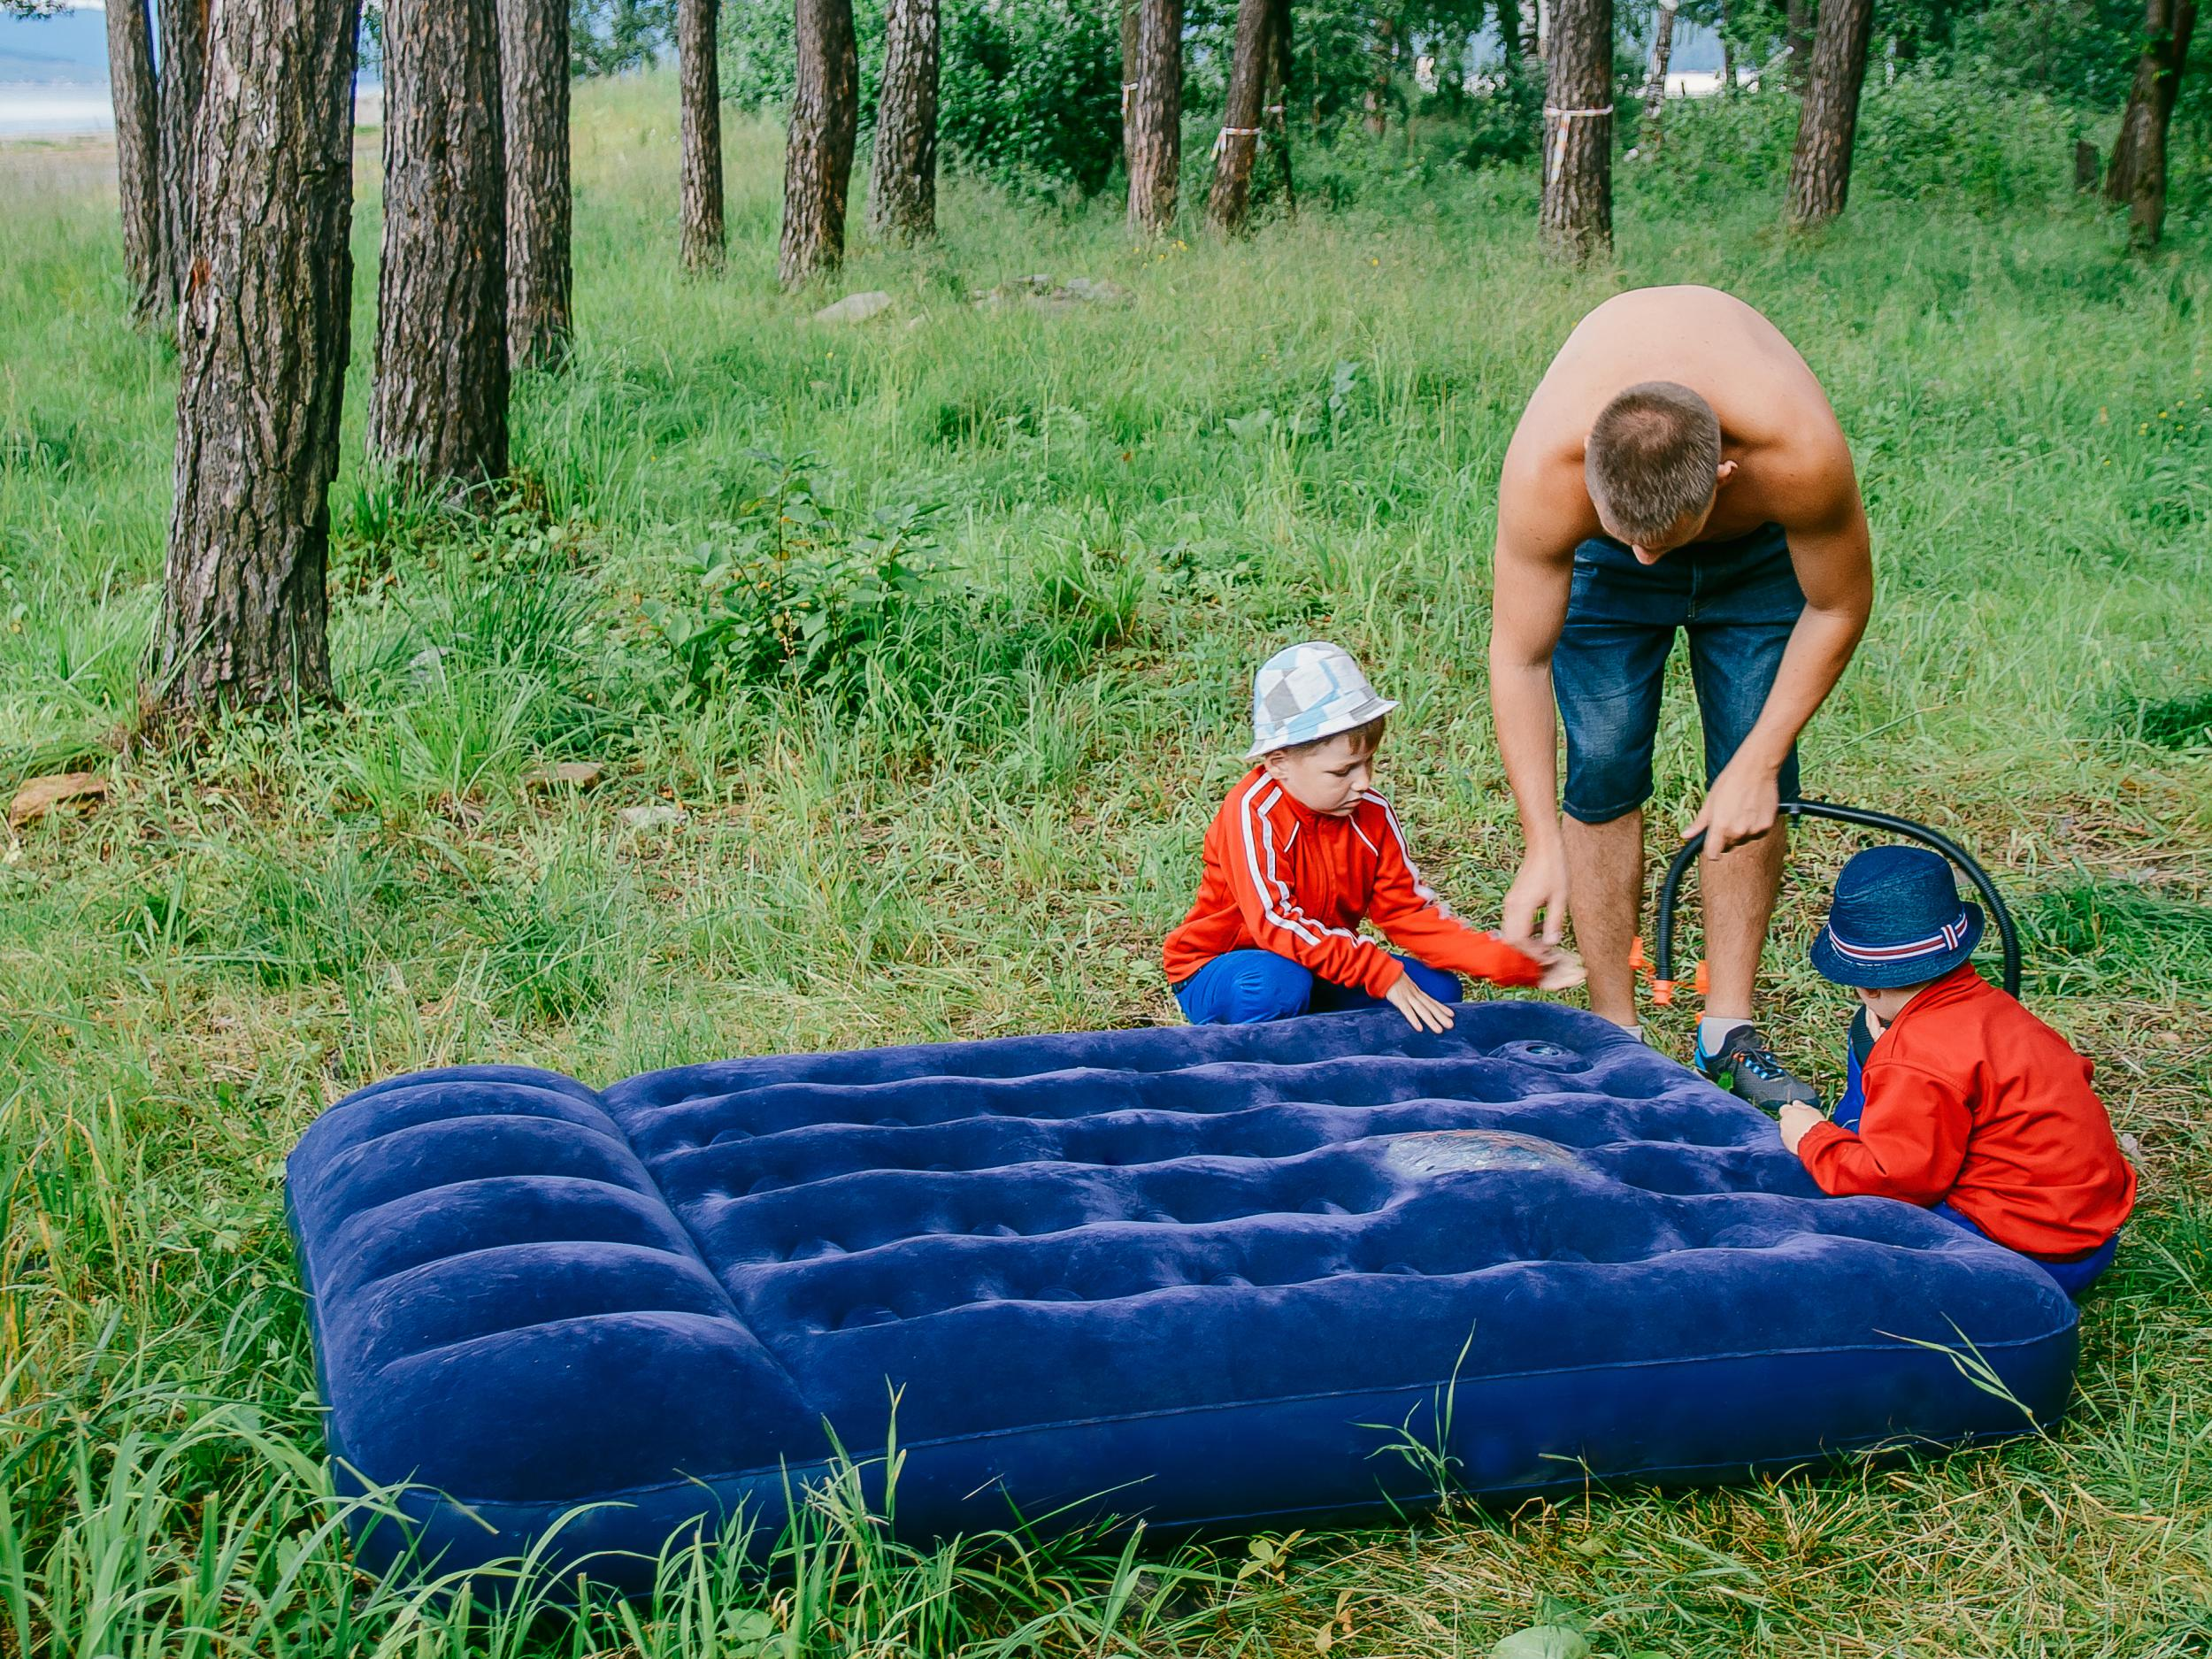 Camping Aero Bed 14 Best Air Beds The Independent